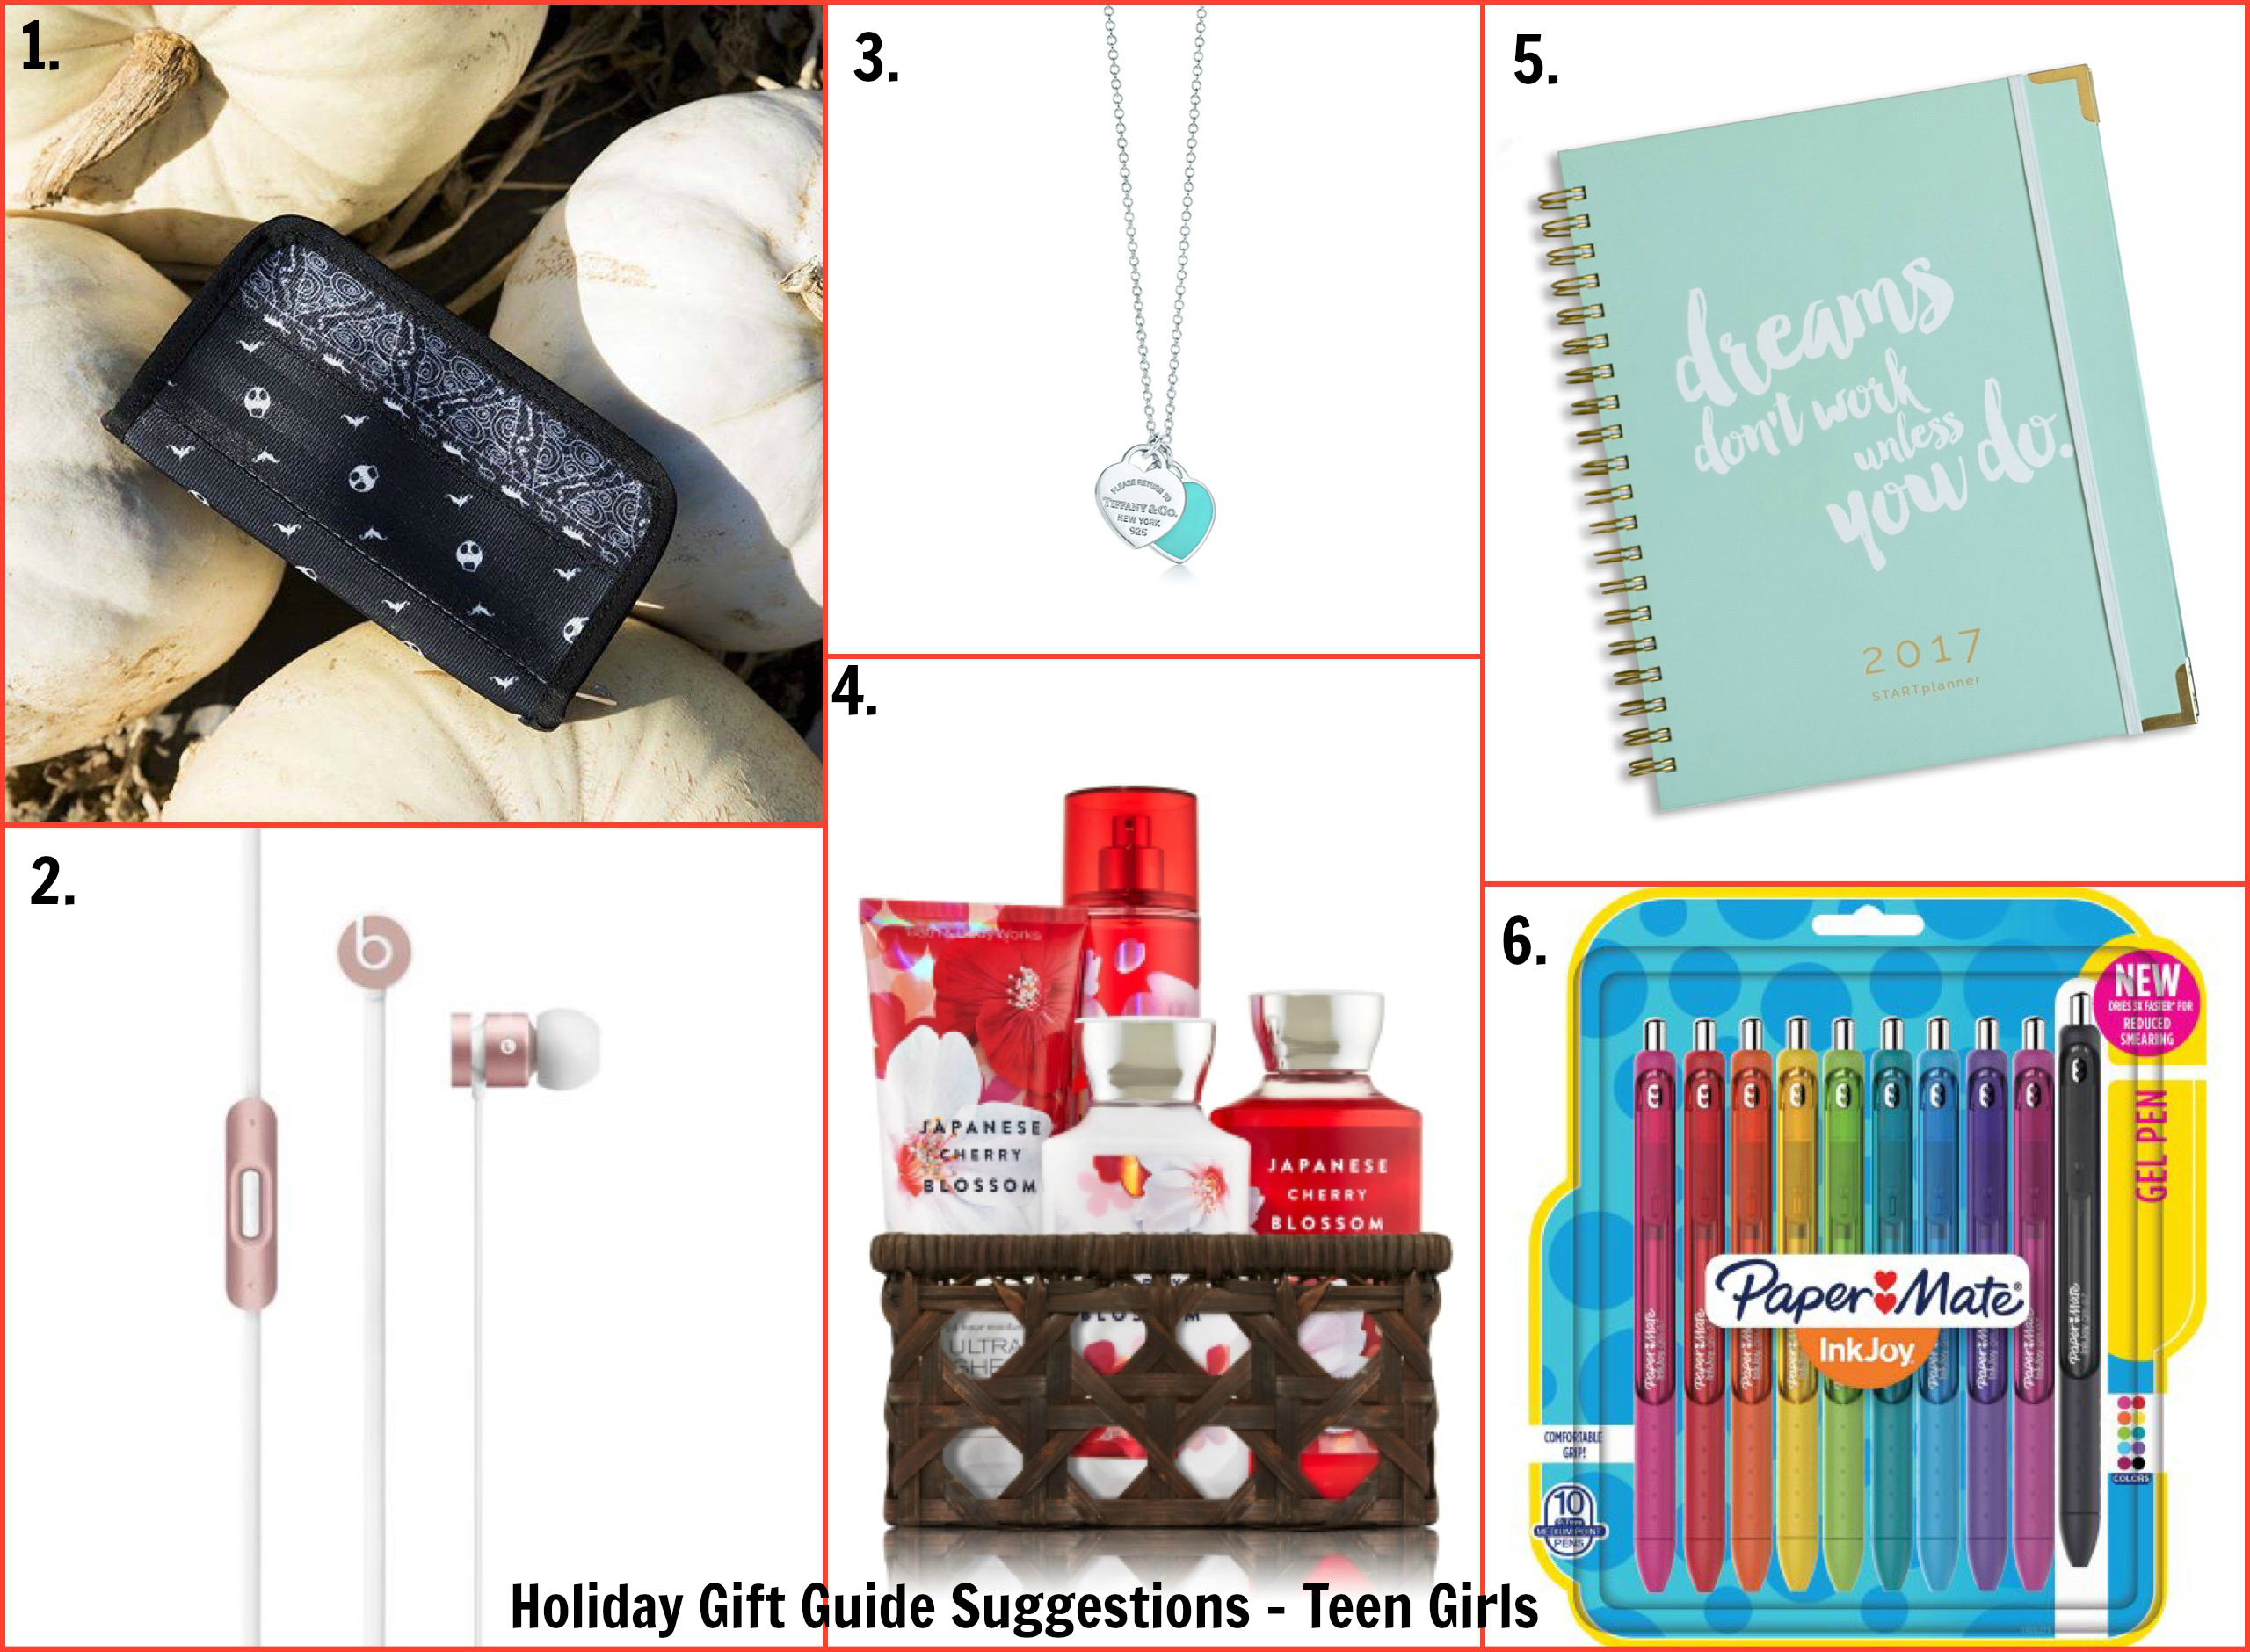 2016 Holiday Gift Guide Suggestions for Teen Girls